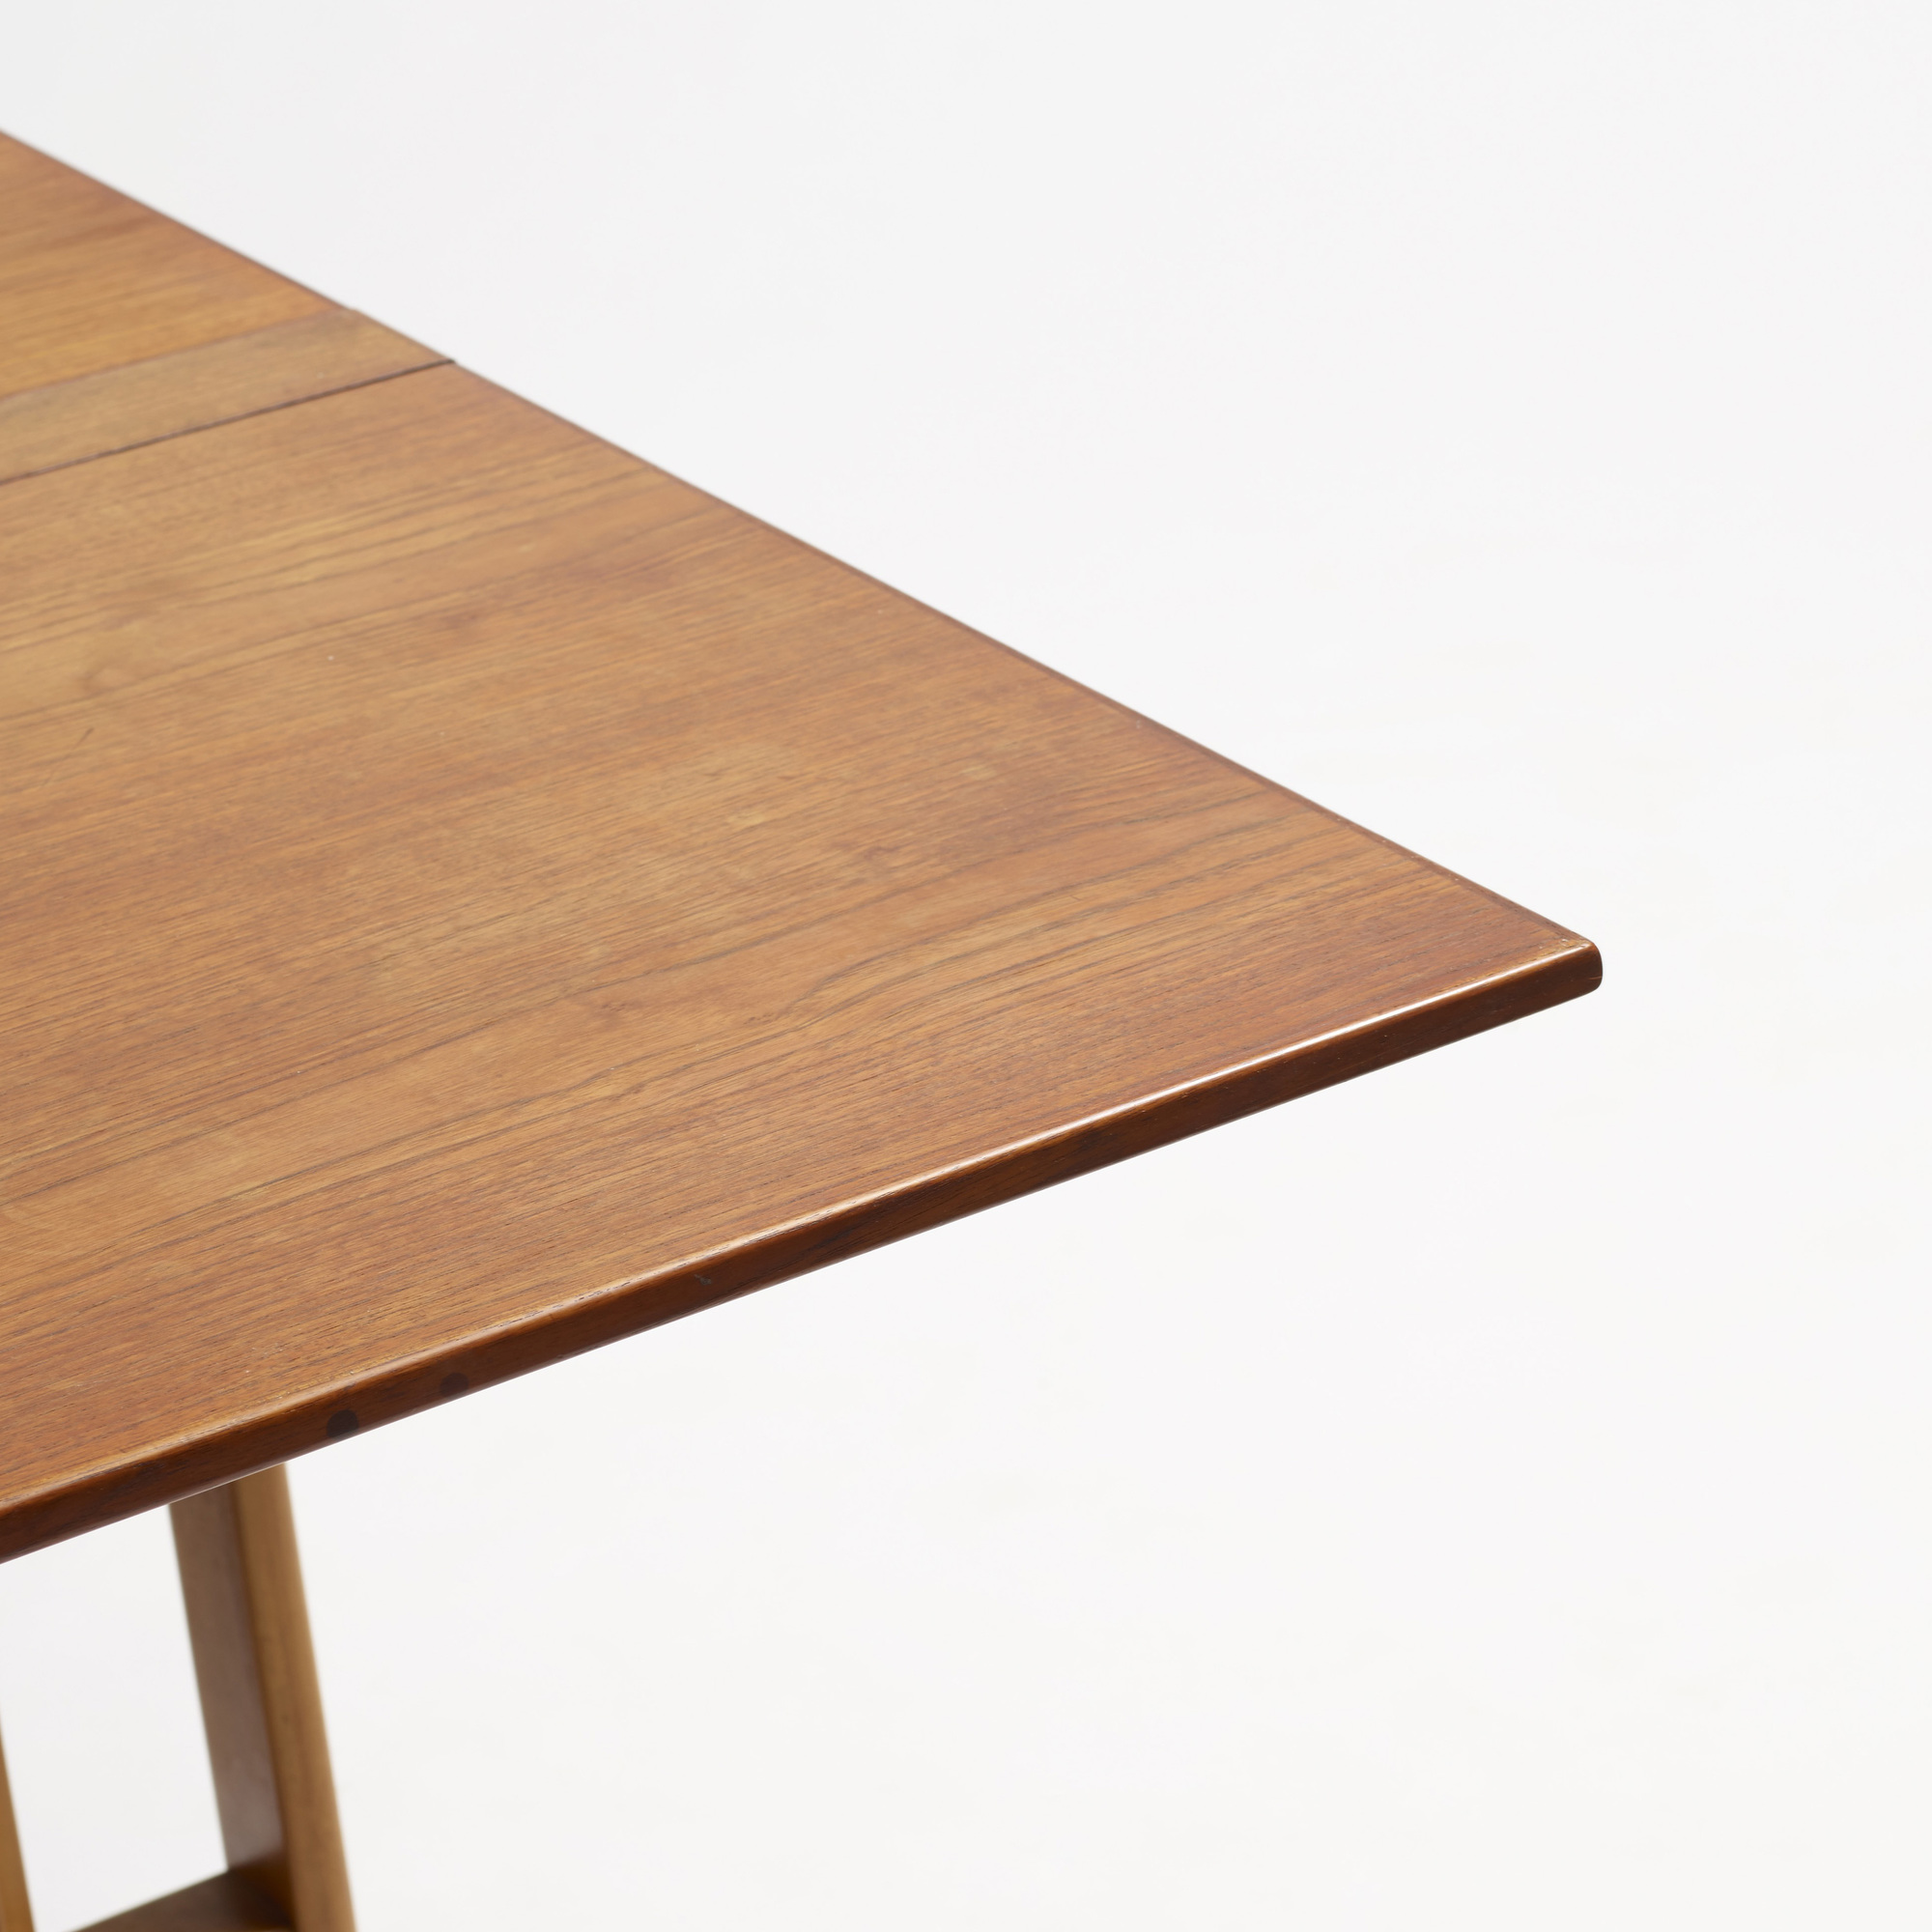 267: Bruno Mathsson / Maria folding table (5 of 5)